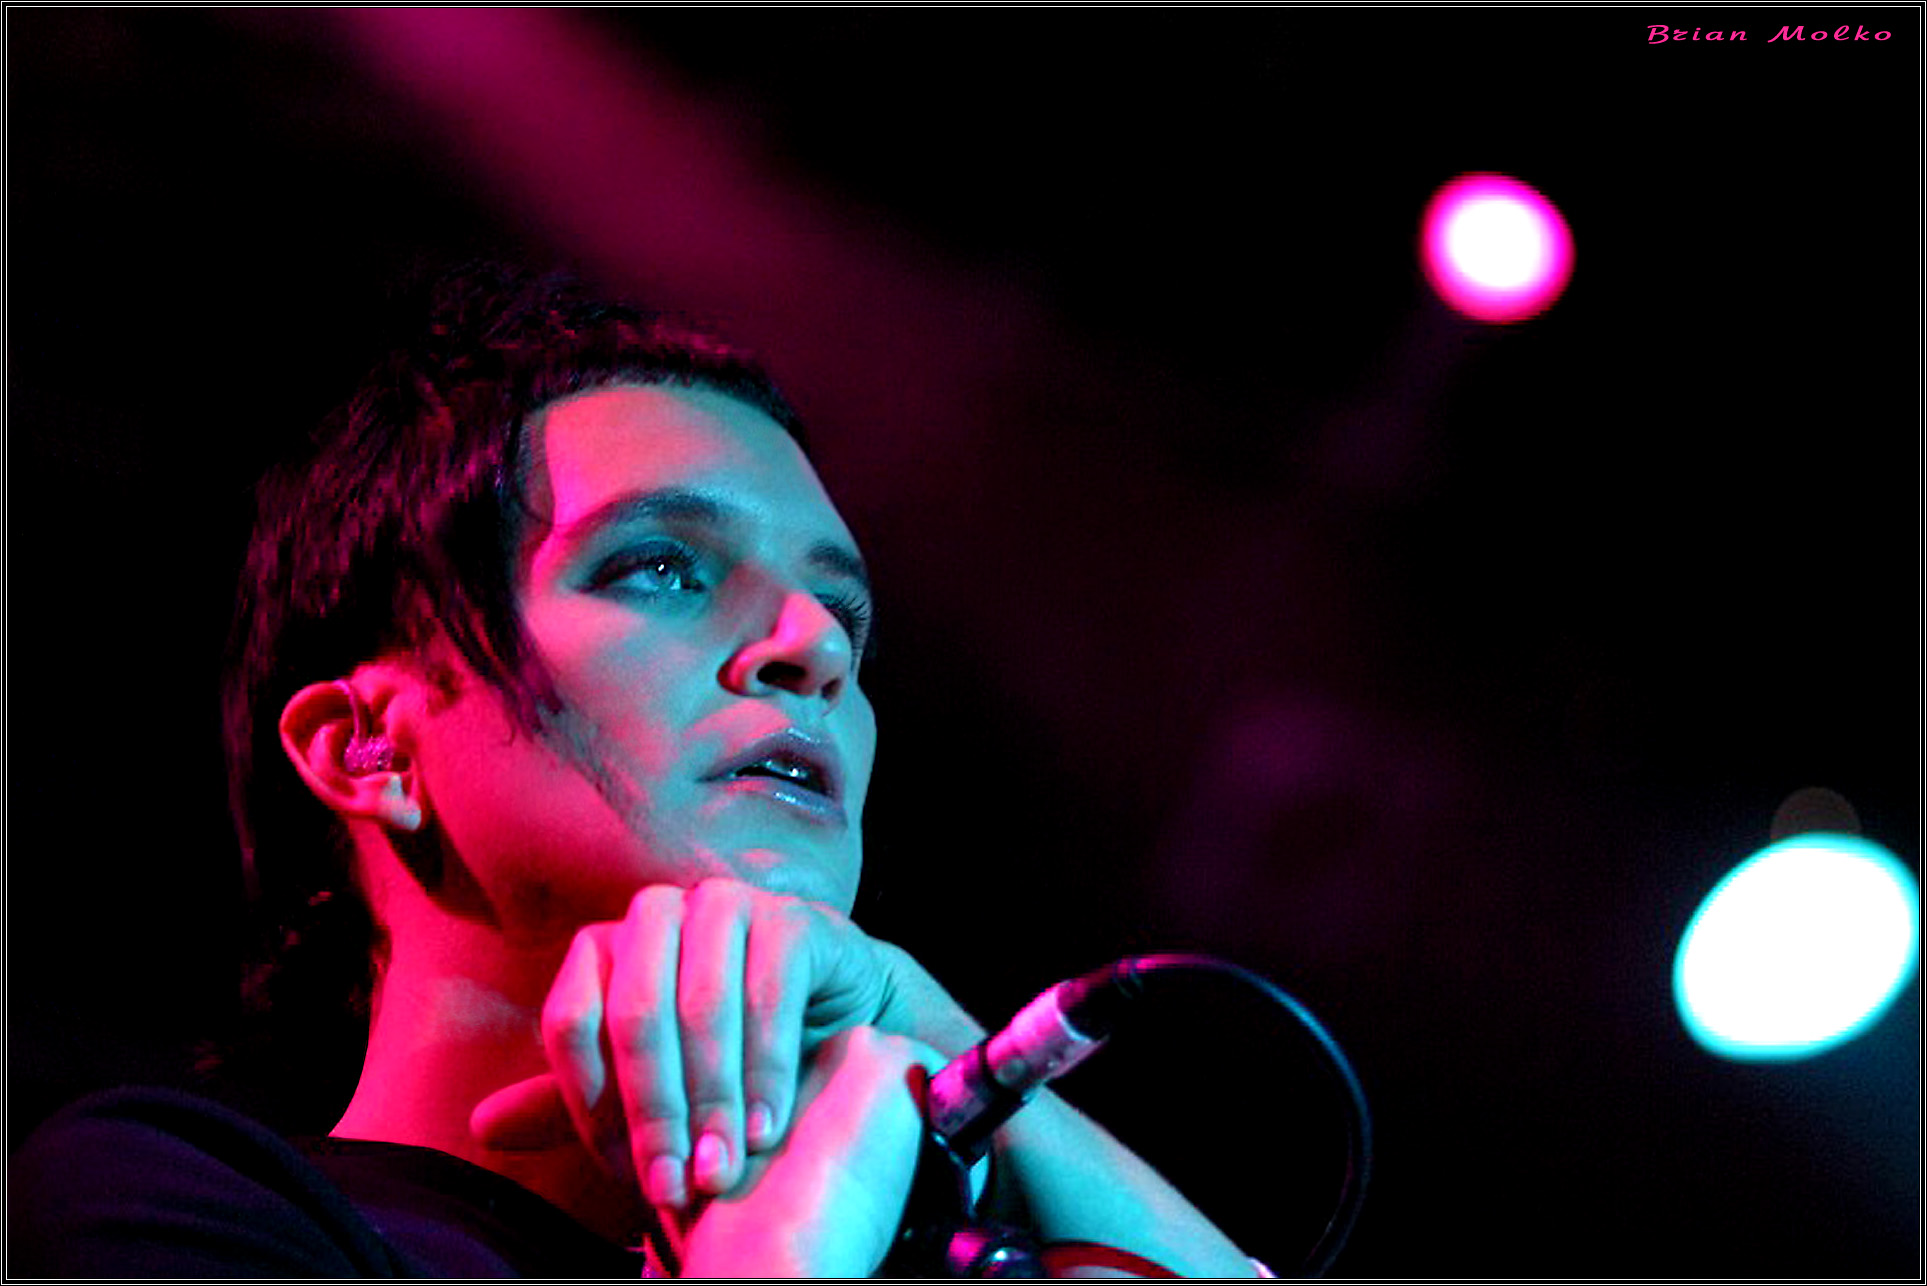 Brian Molko photo #36334